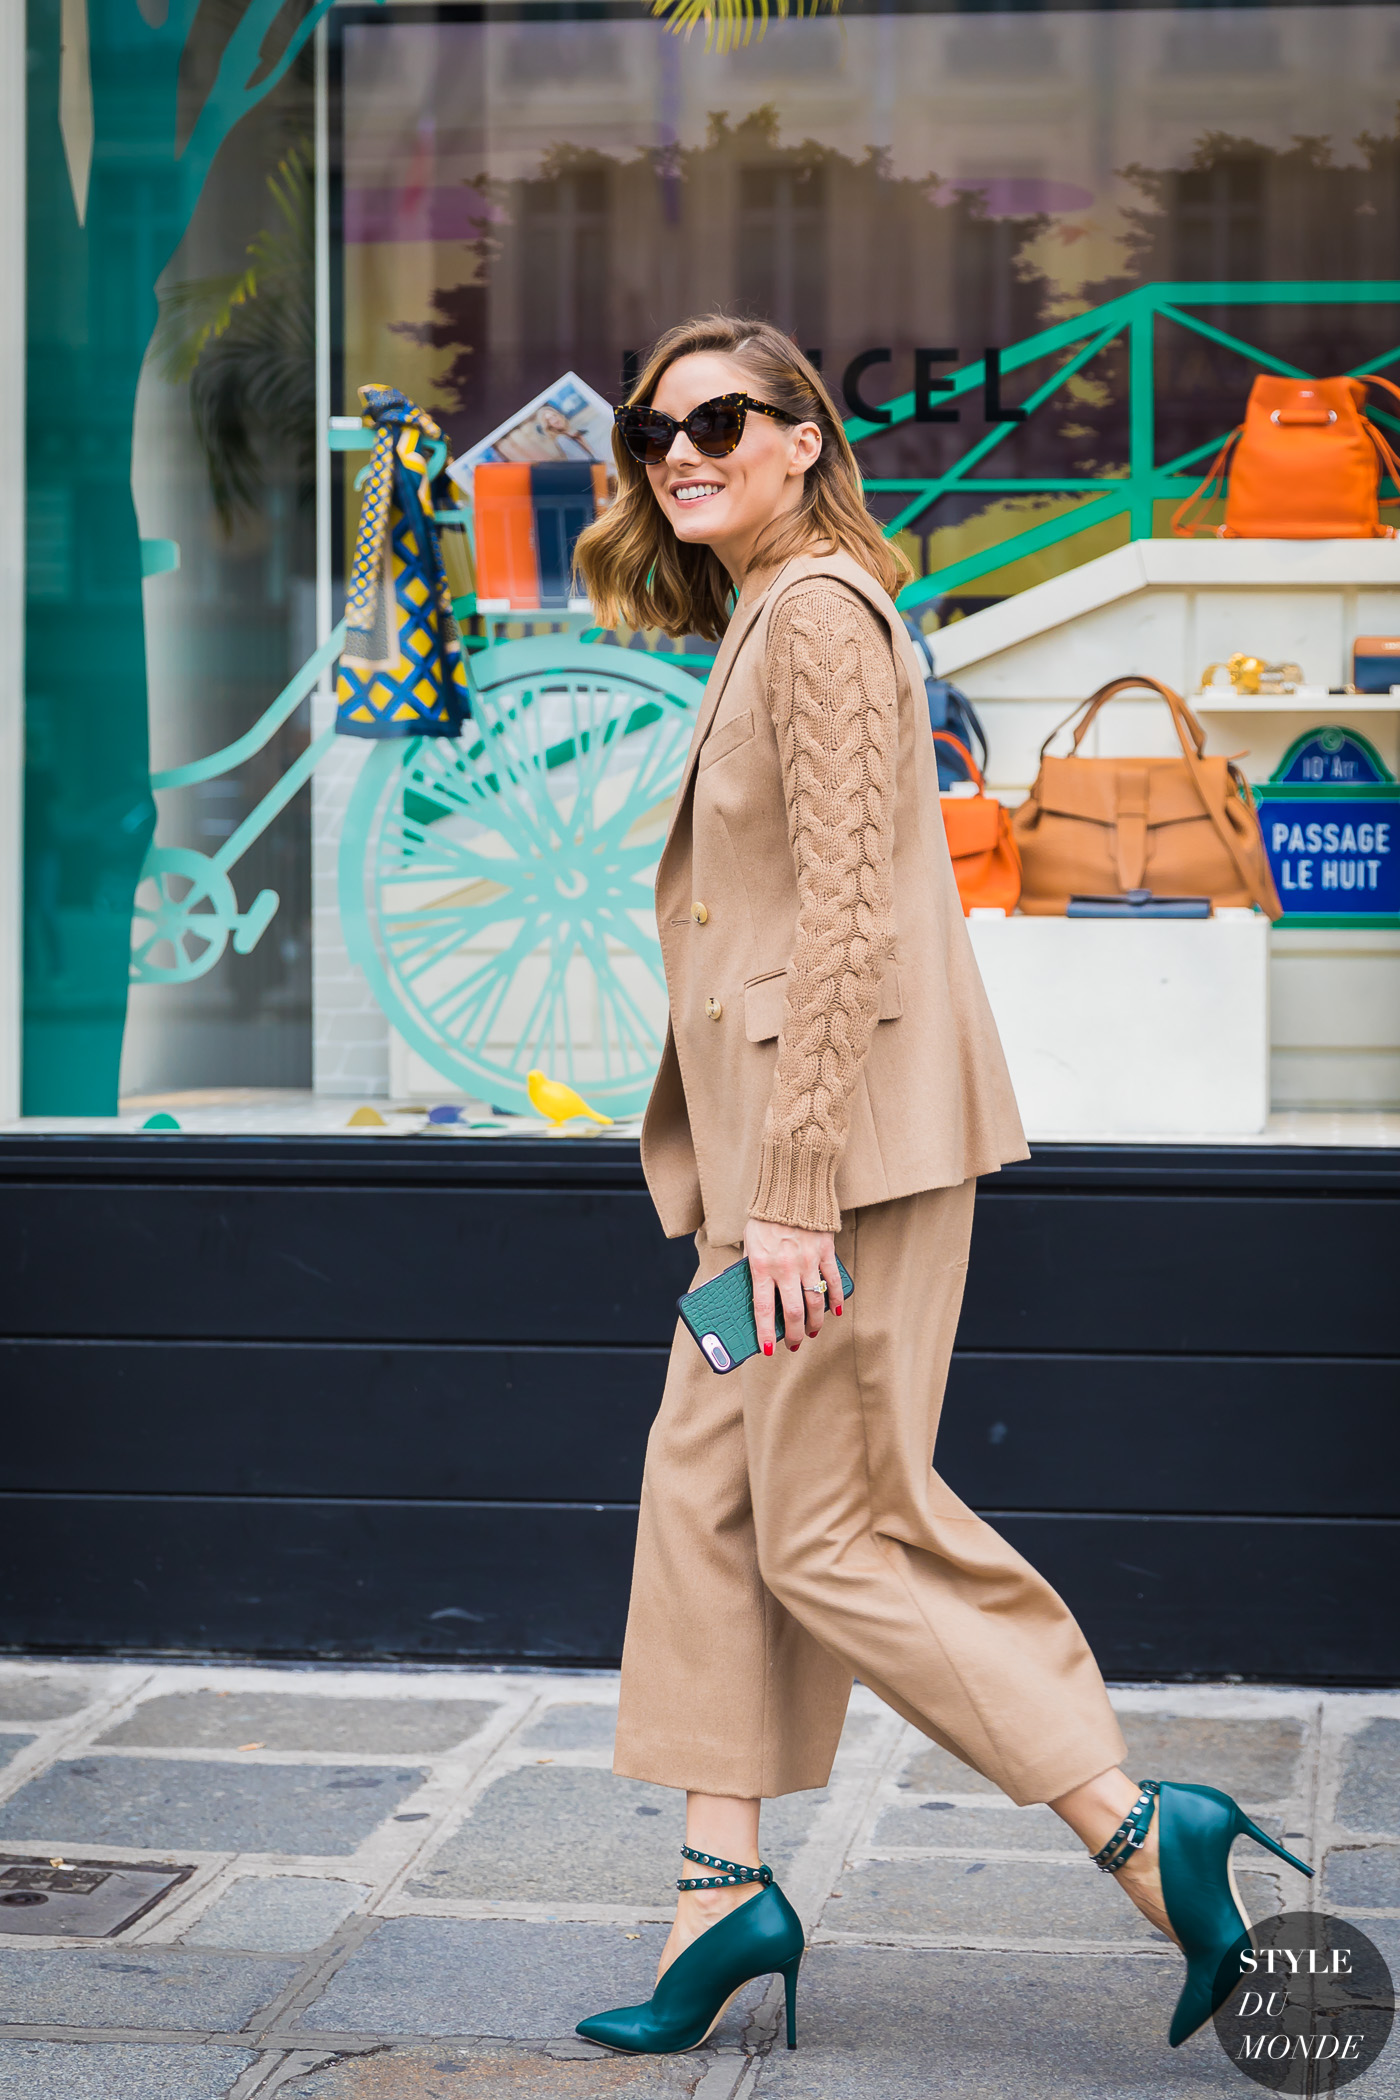 Olivia Palermo by STYLEDUMONDE Street Style Fashion Photography_48A9999